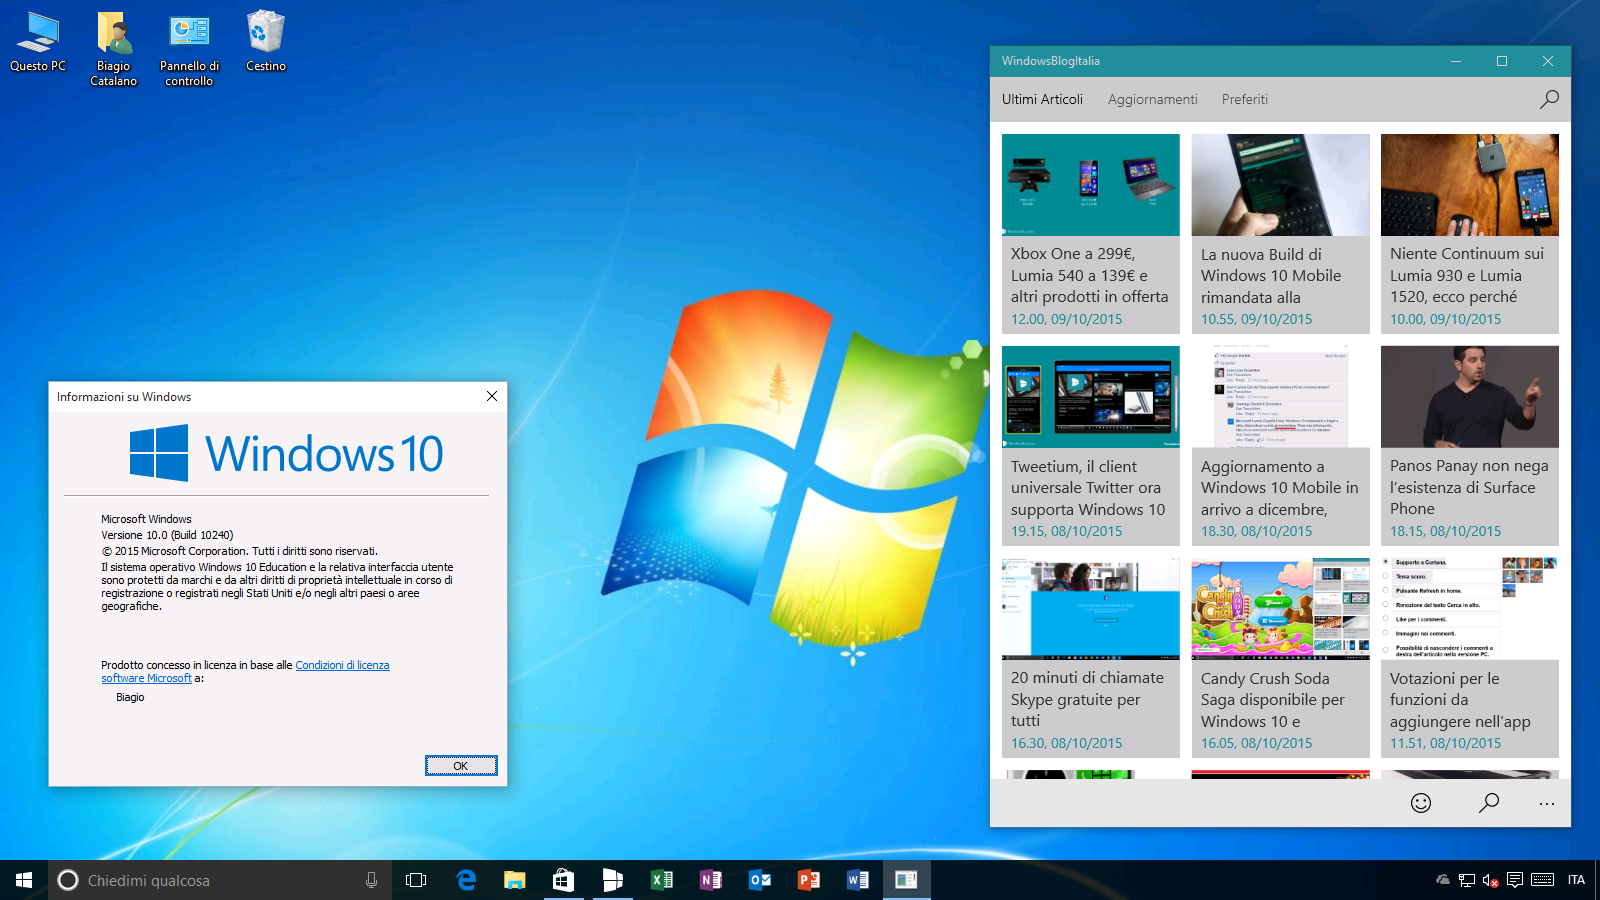 Tema Windows 7 su Windows 10 10240